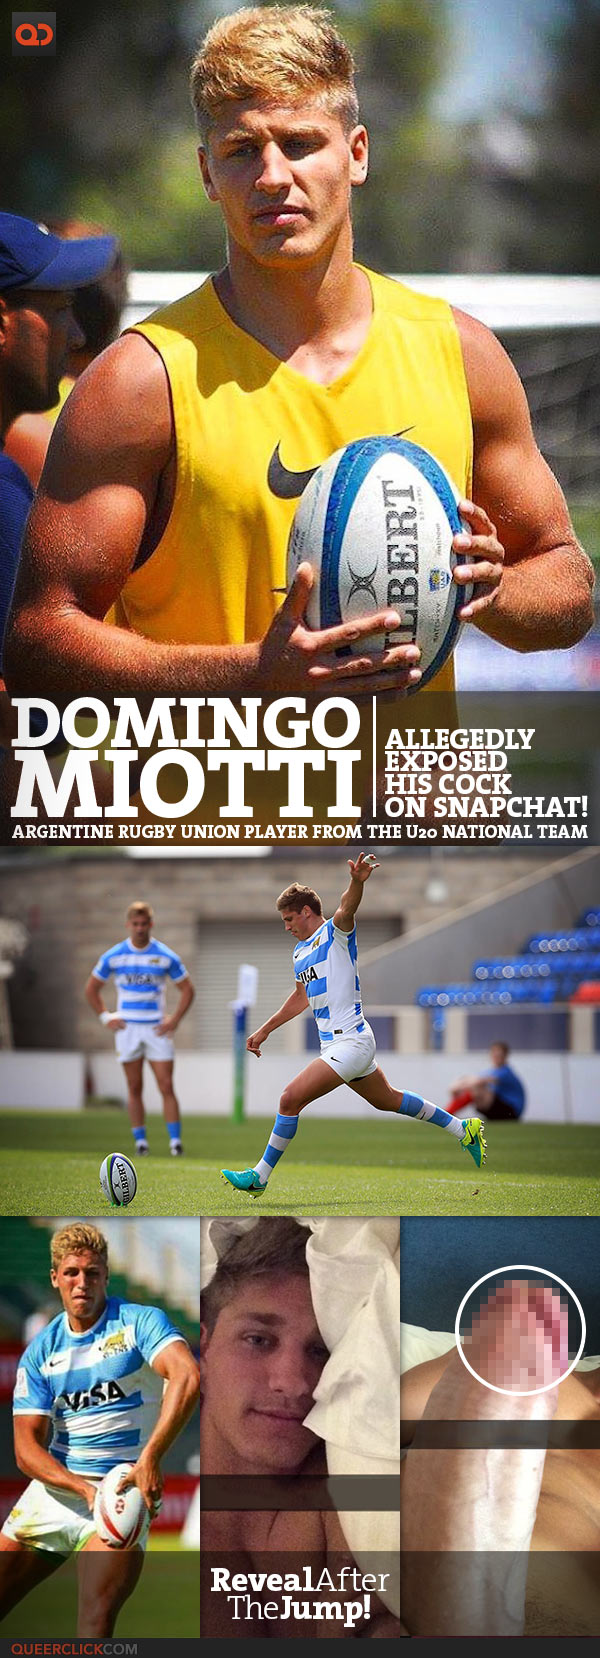 Domingo Miotti, Argentine Rugby Union Player From The U20 National Team, Allegedly Exposed His Cock On Snapchat!